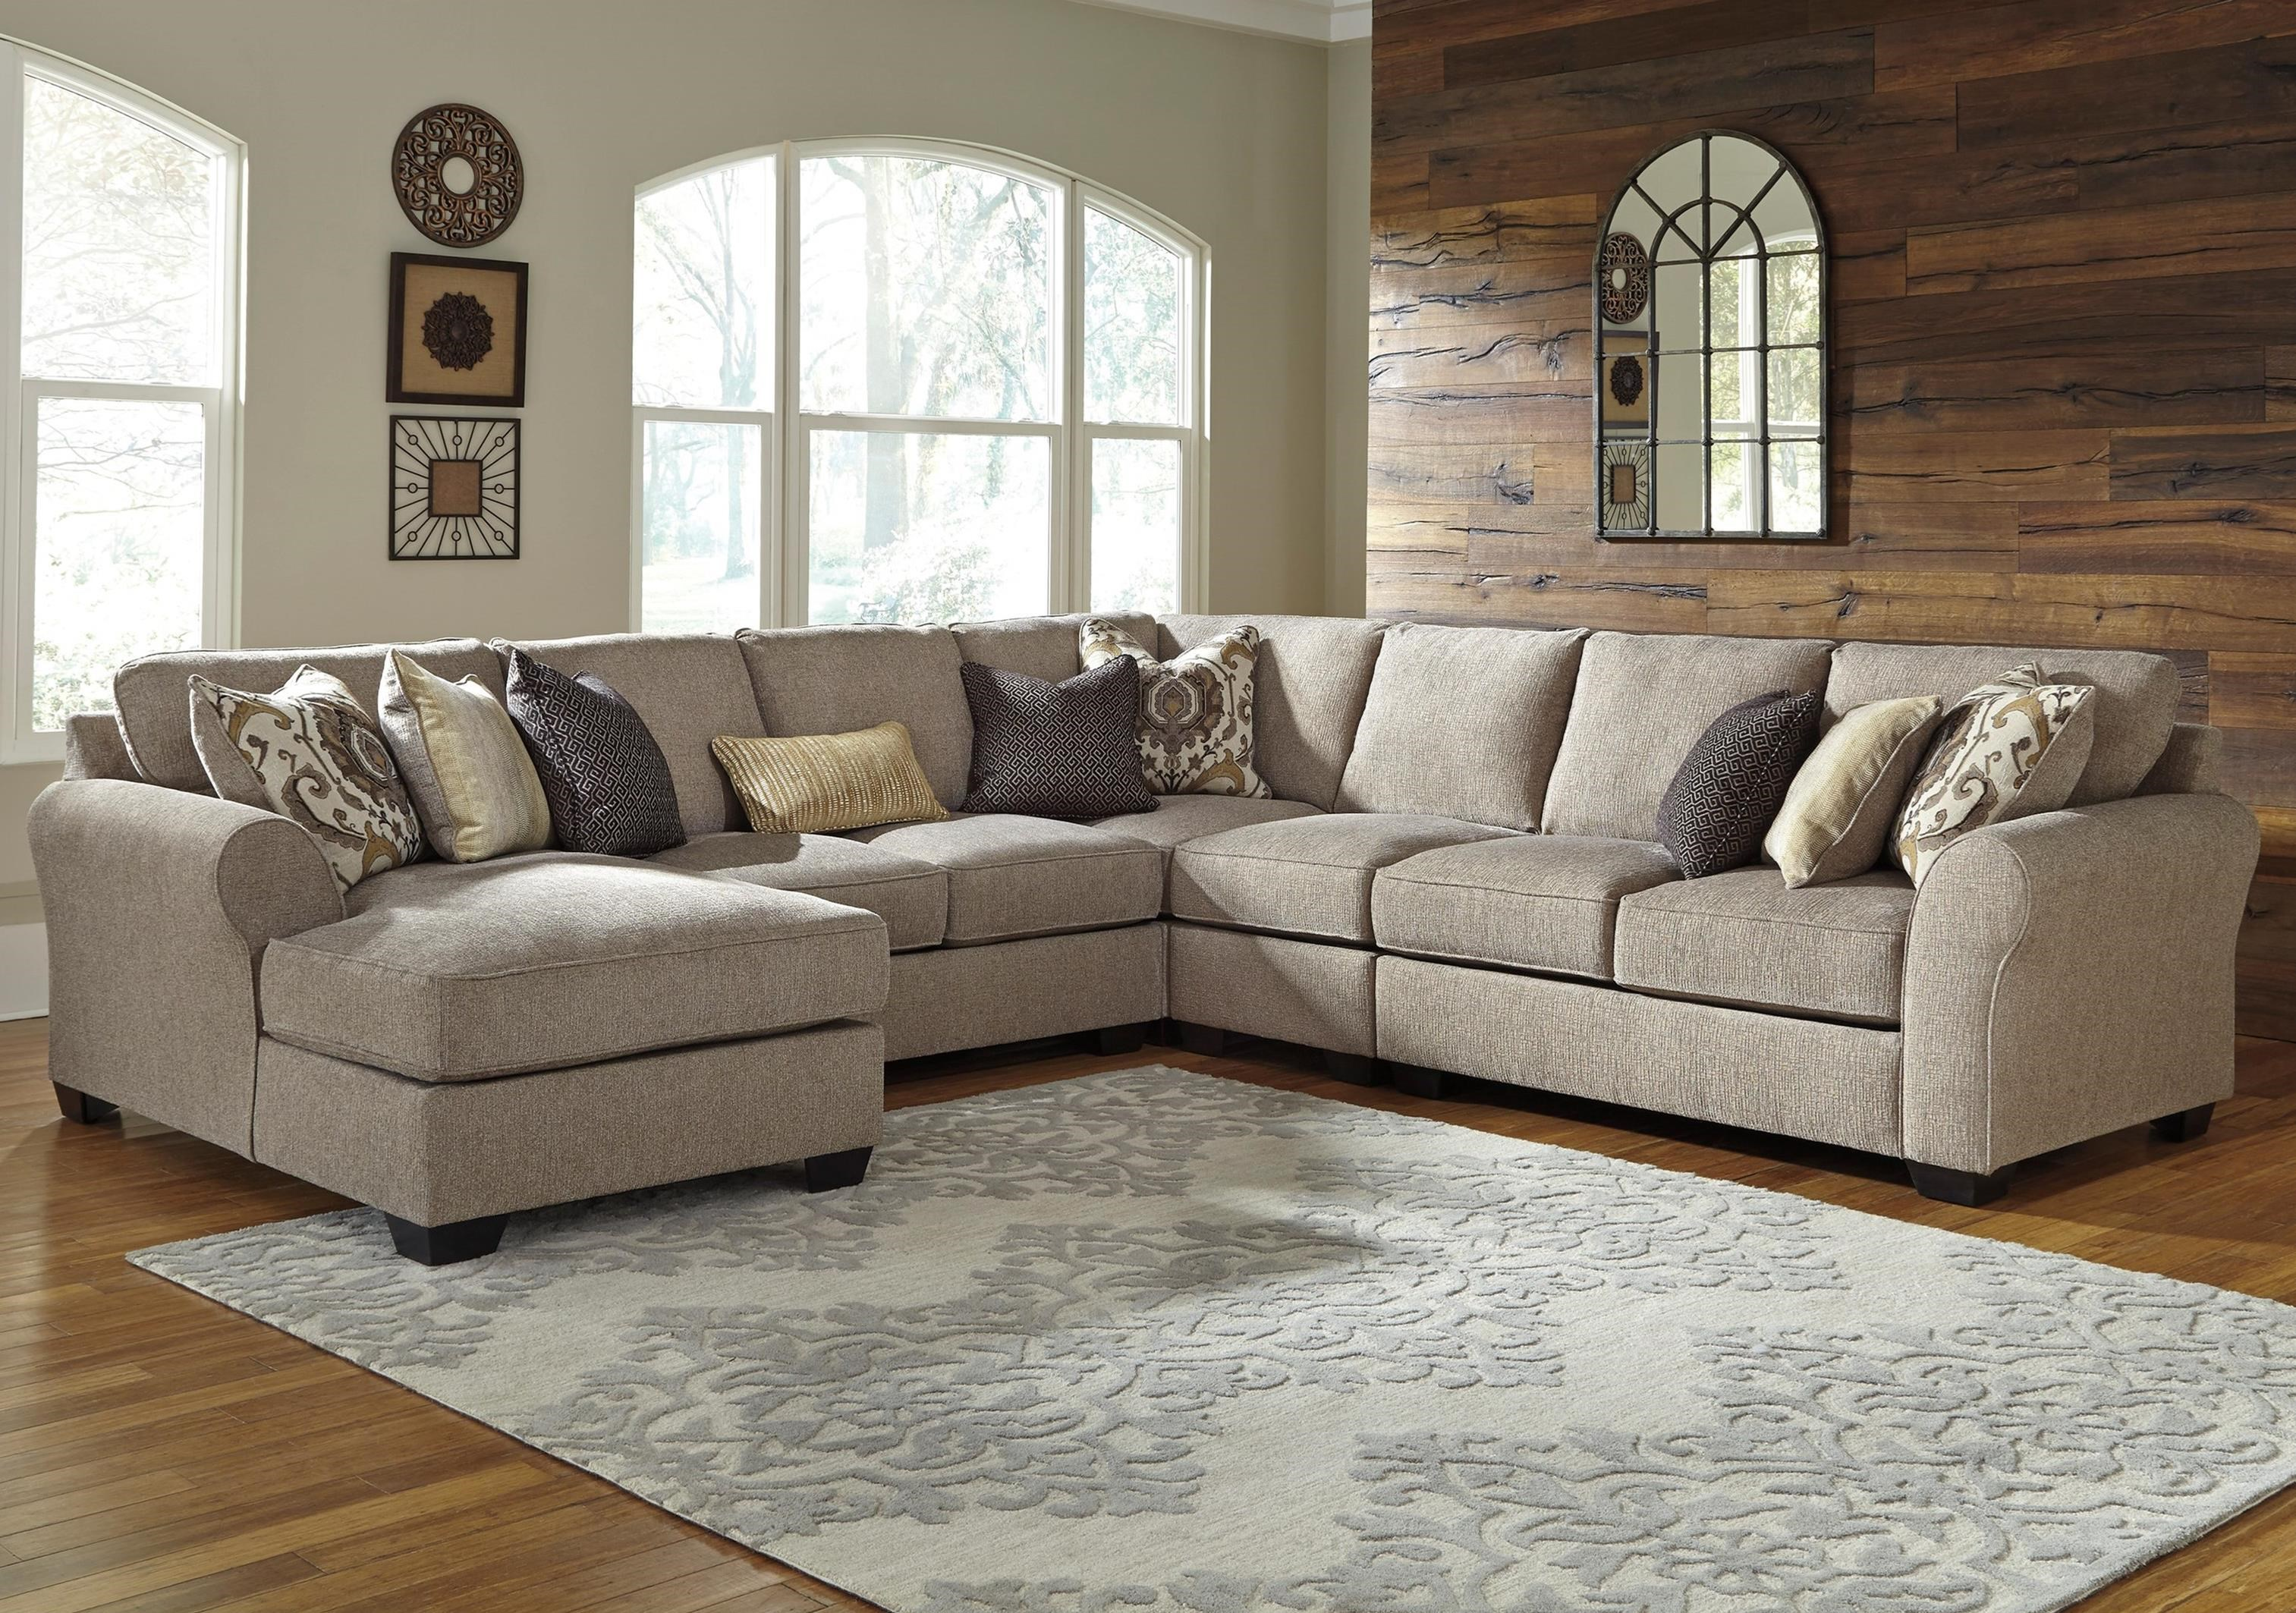 Benchcraft Pantomine 5-Piece Sectional with Left Chaise - Item Number: 3910216+34+77+46+56